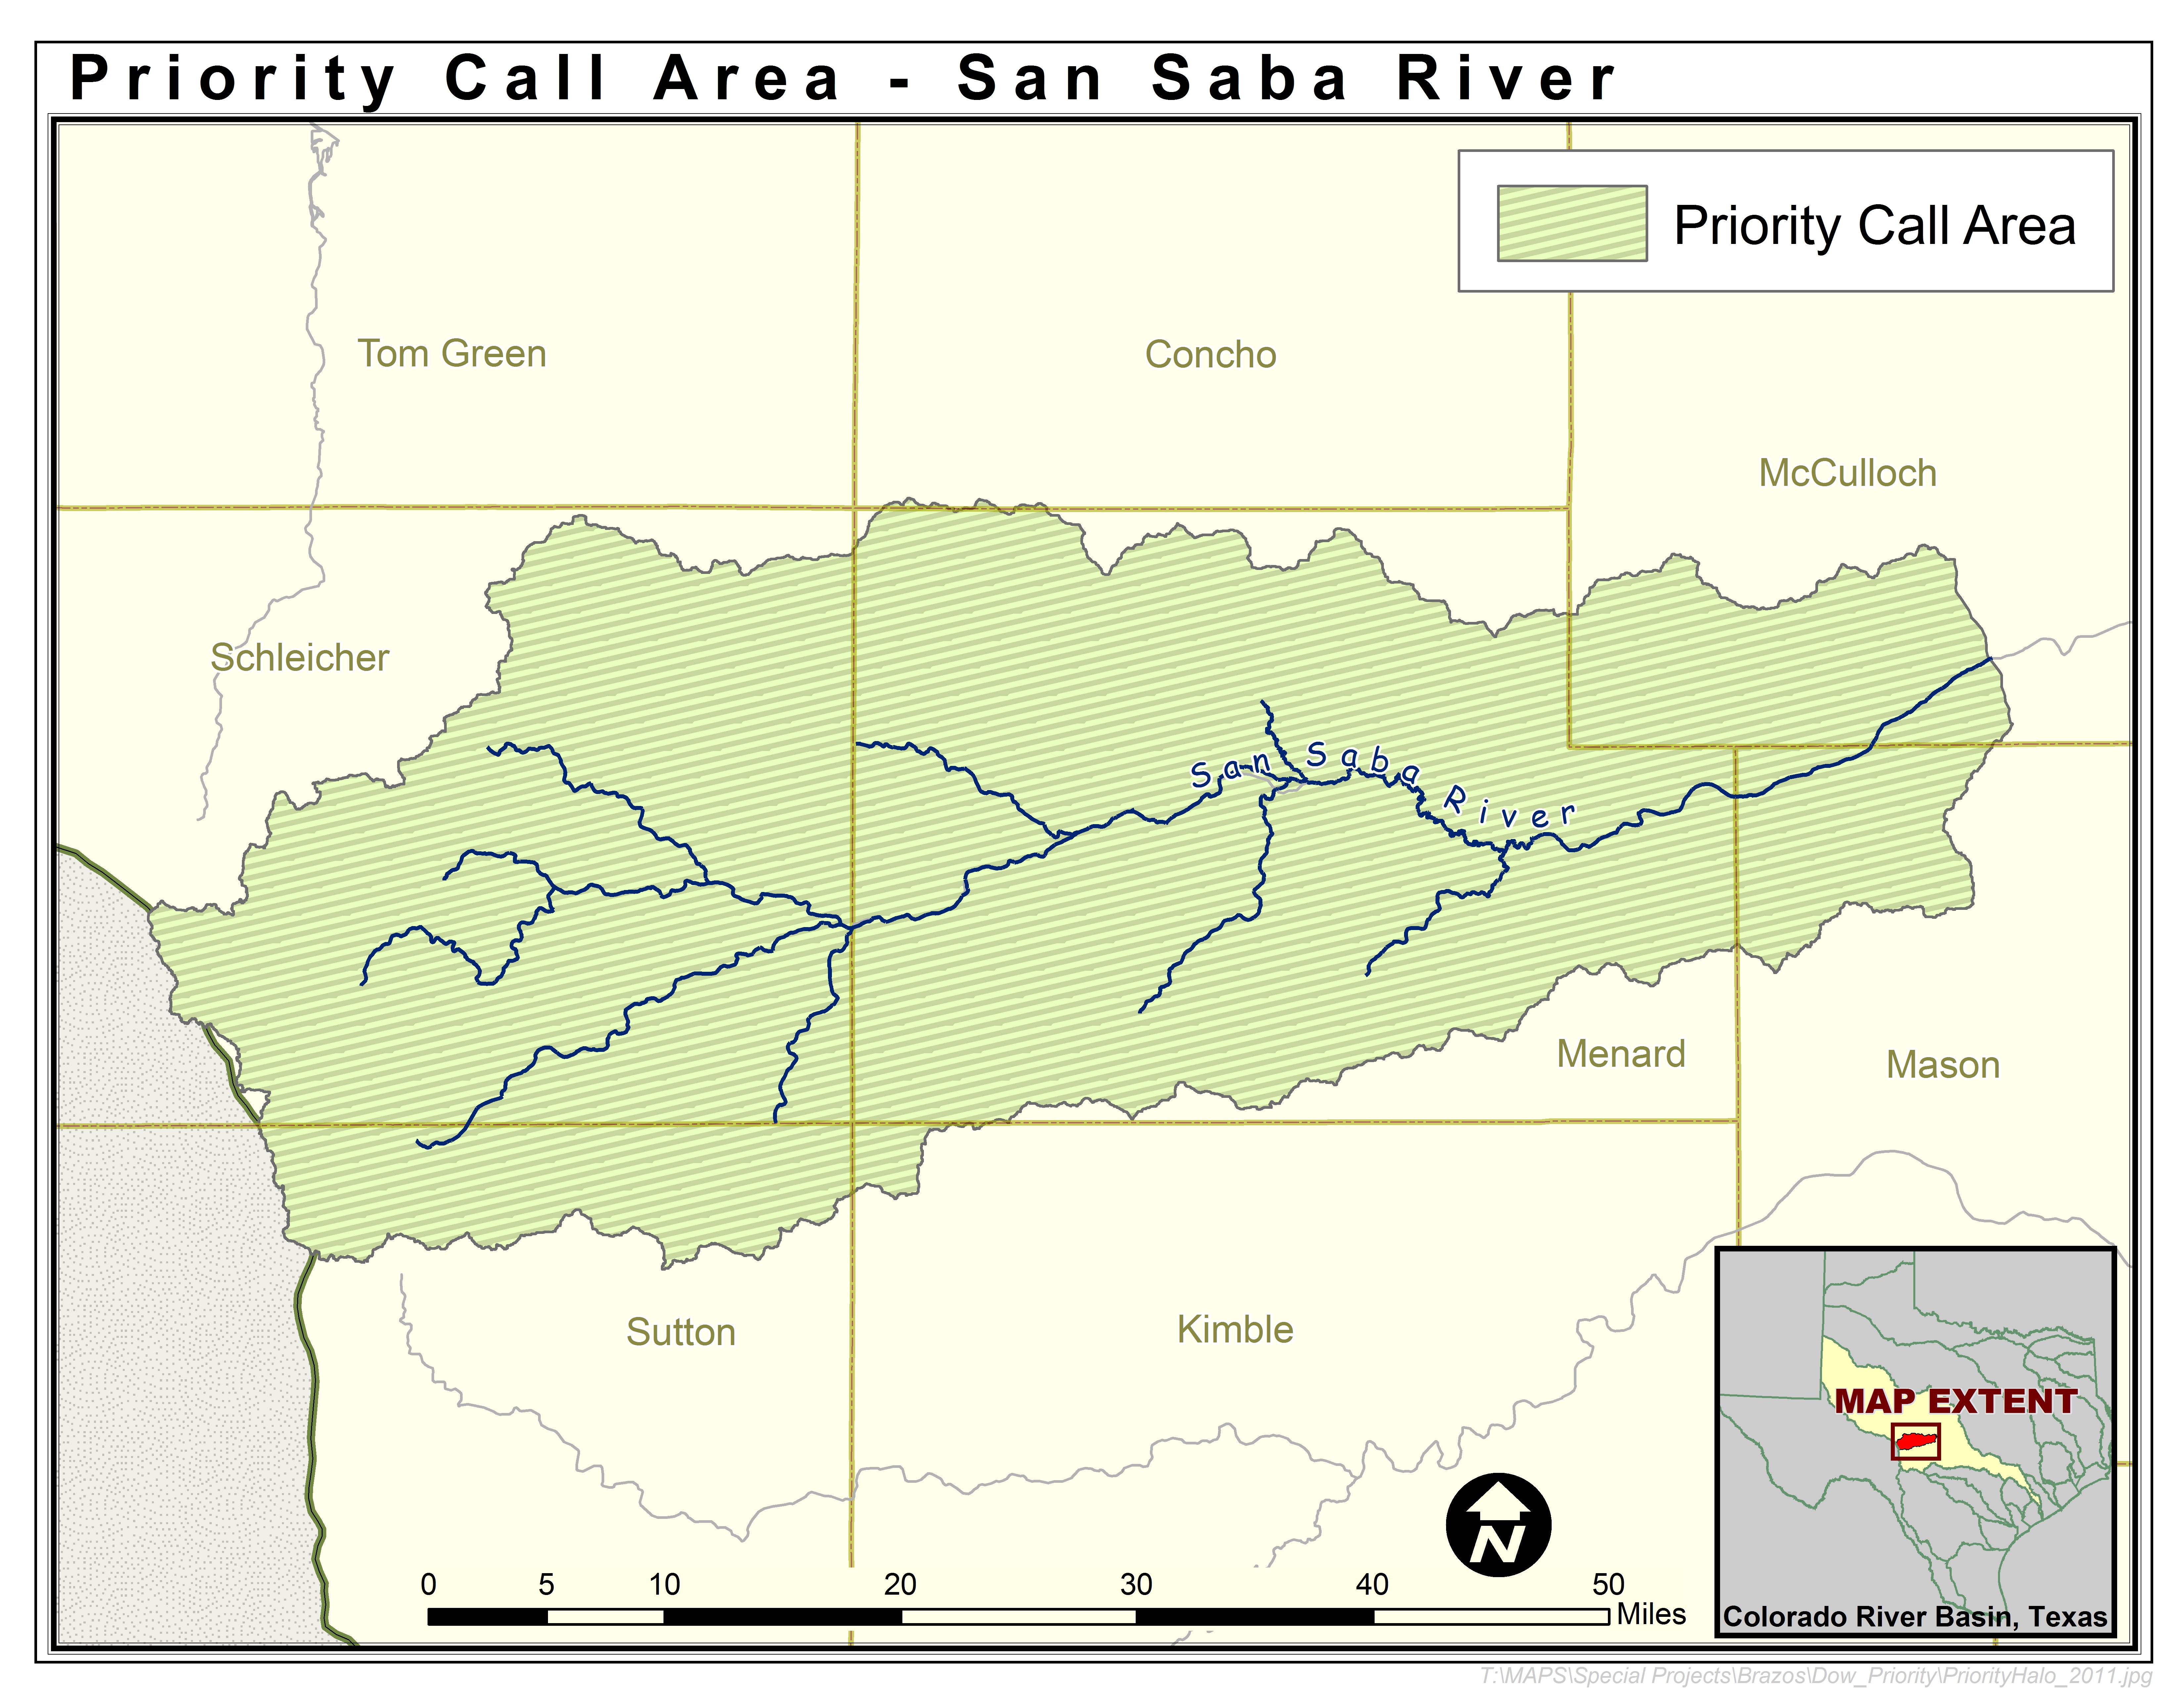 Map of the San Saba Watershed Priority Call Area